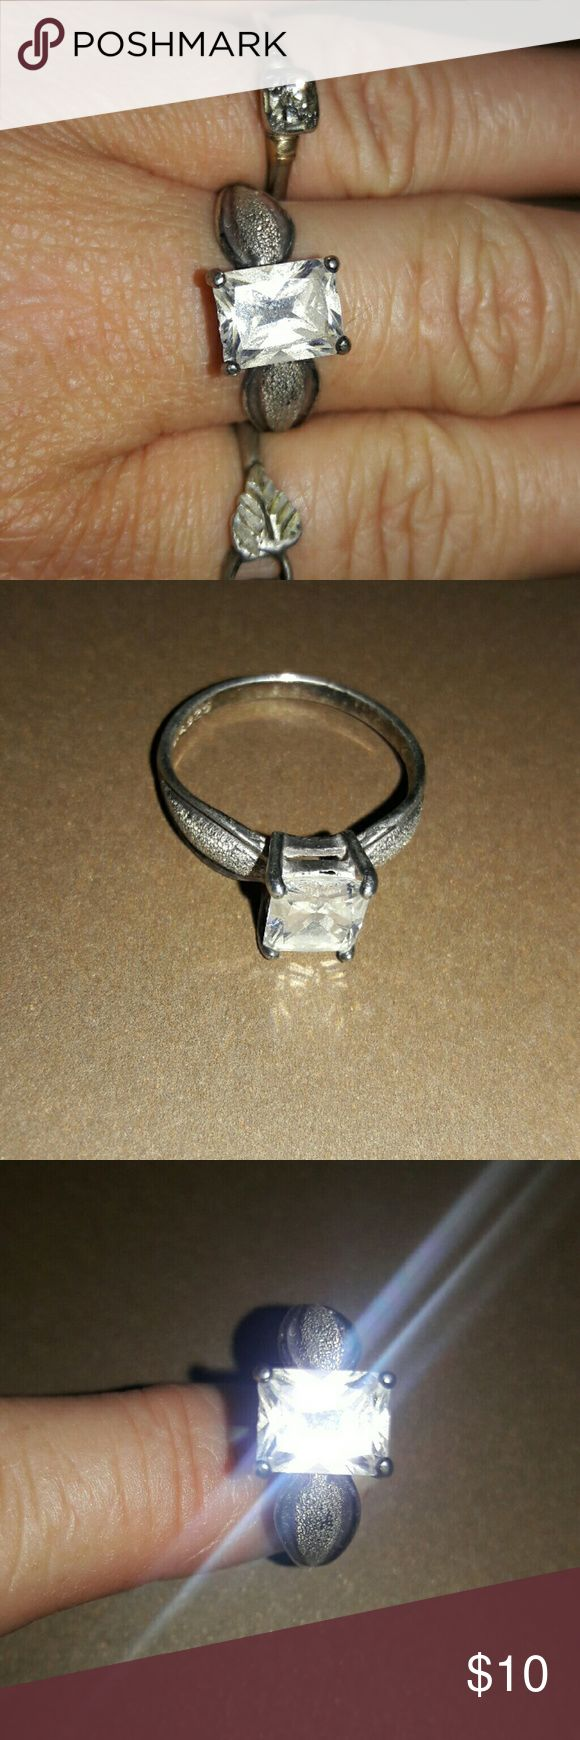 """Emerald cut """"diamond like"""" cz 925 sterling silver Vintage solitare emerald cut cz. Elegant band and stippled detail. The cz appears to be a 2+ karat cz or rhinestone. There are chips in the clear material around the top and bottom. This fit's an 8.5-9 size finger. Please ask any questions. Thanks! Vintage  Jewelry Rings"""